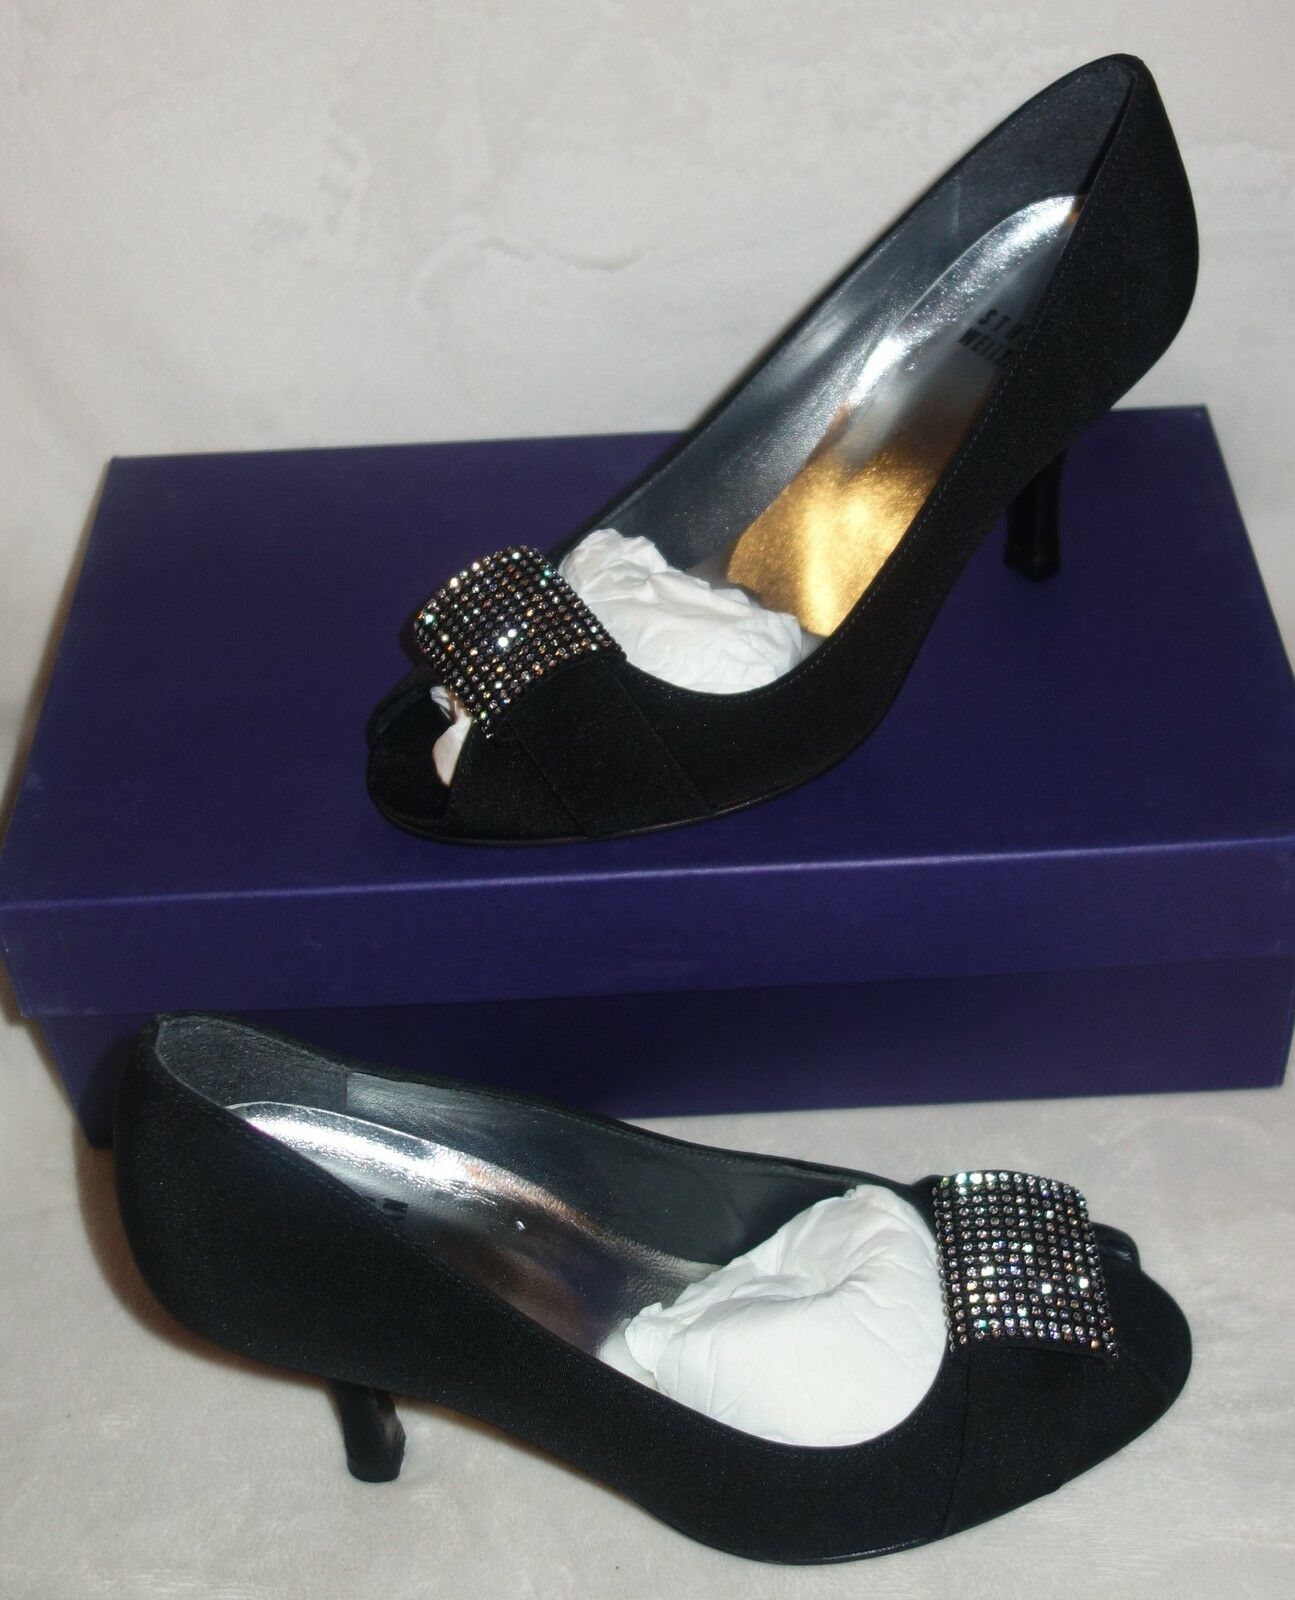 Stuart Weitzman obvious black pumps shoes  sz 36.5 US SZ 6 new